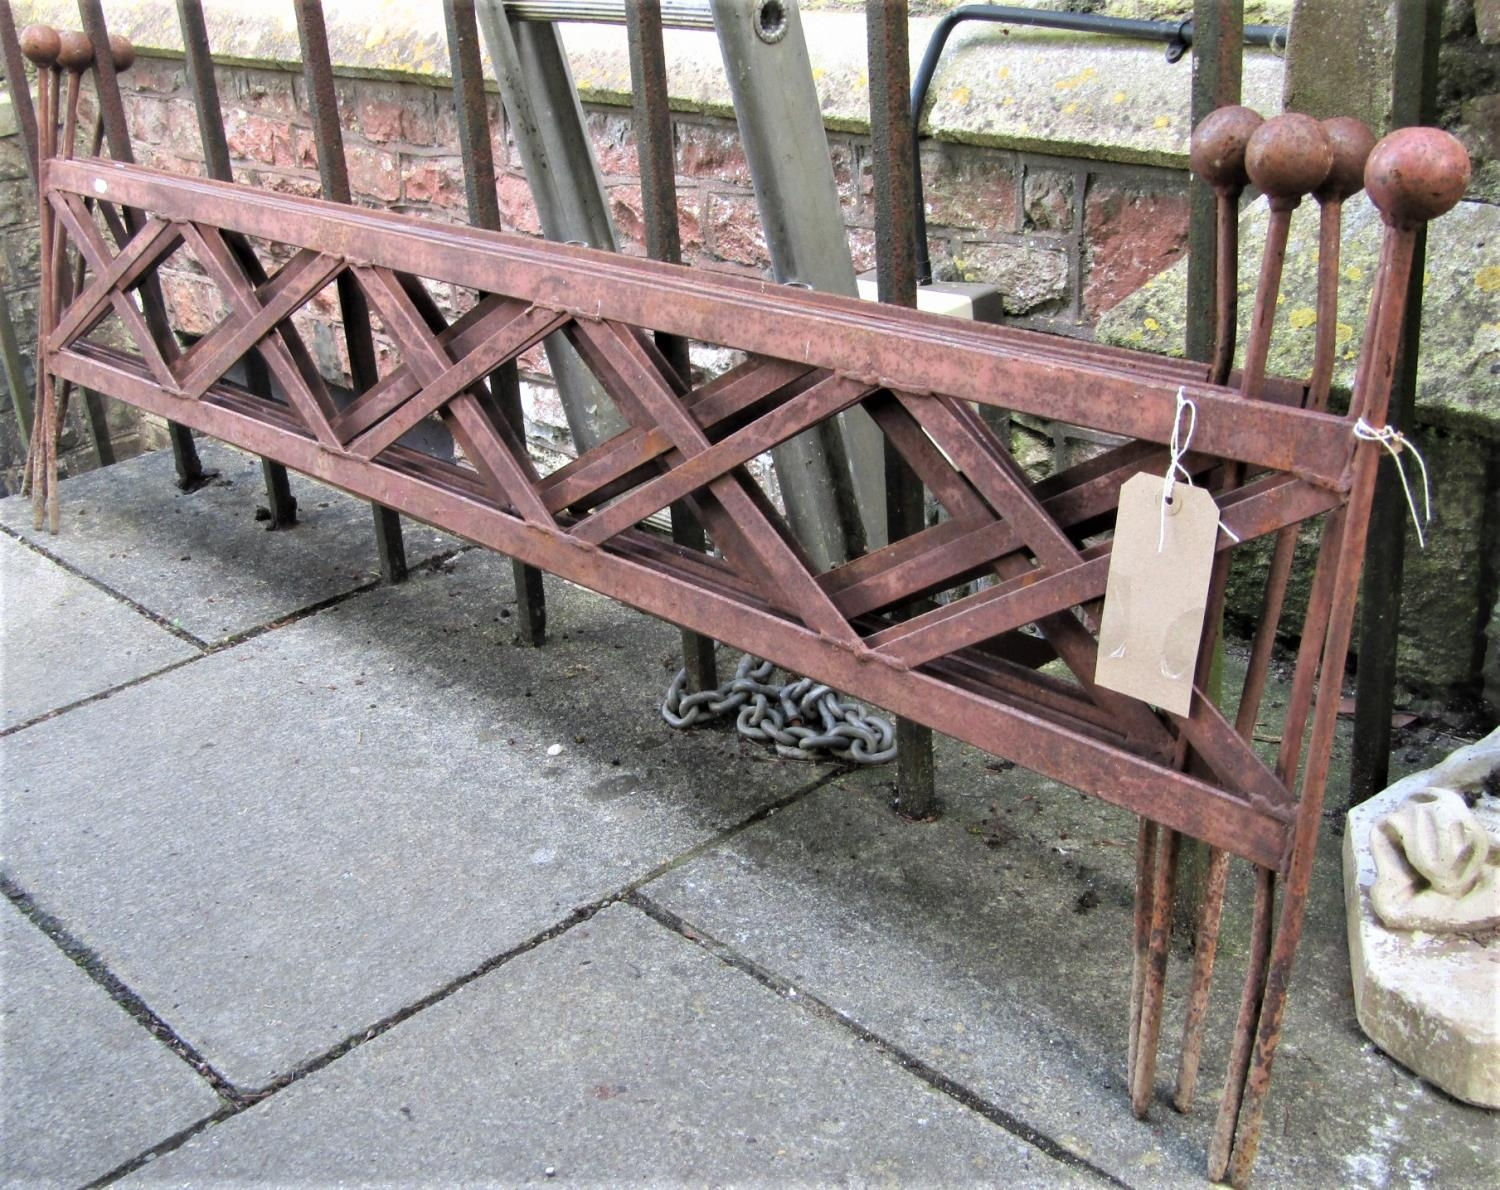 Five 5ft sections of heavy grade steel garden edging with open lattice panels and ball finials, 55cm